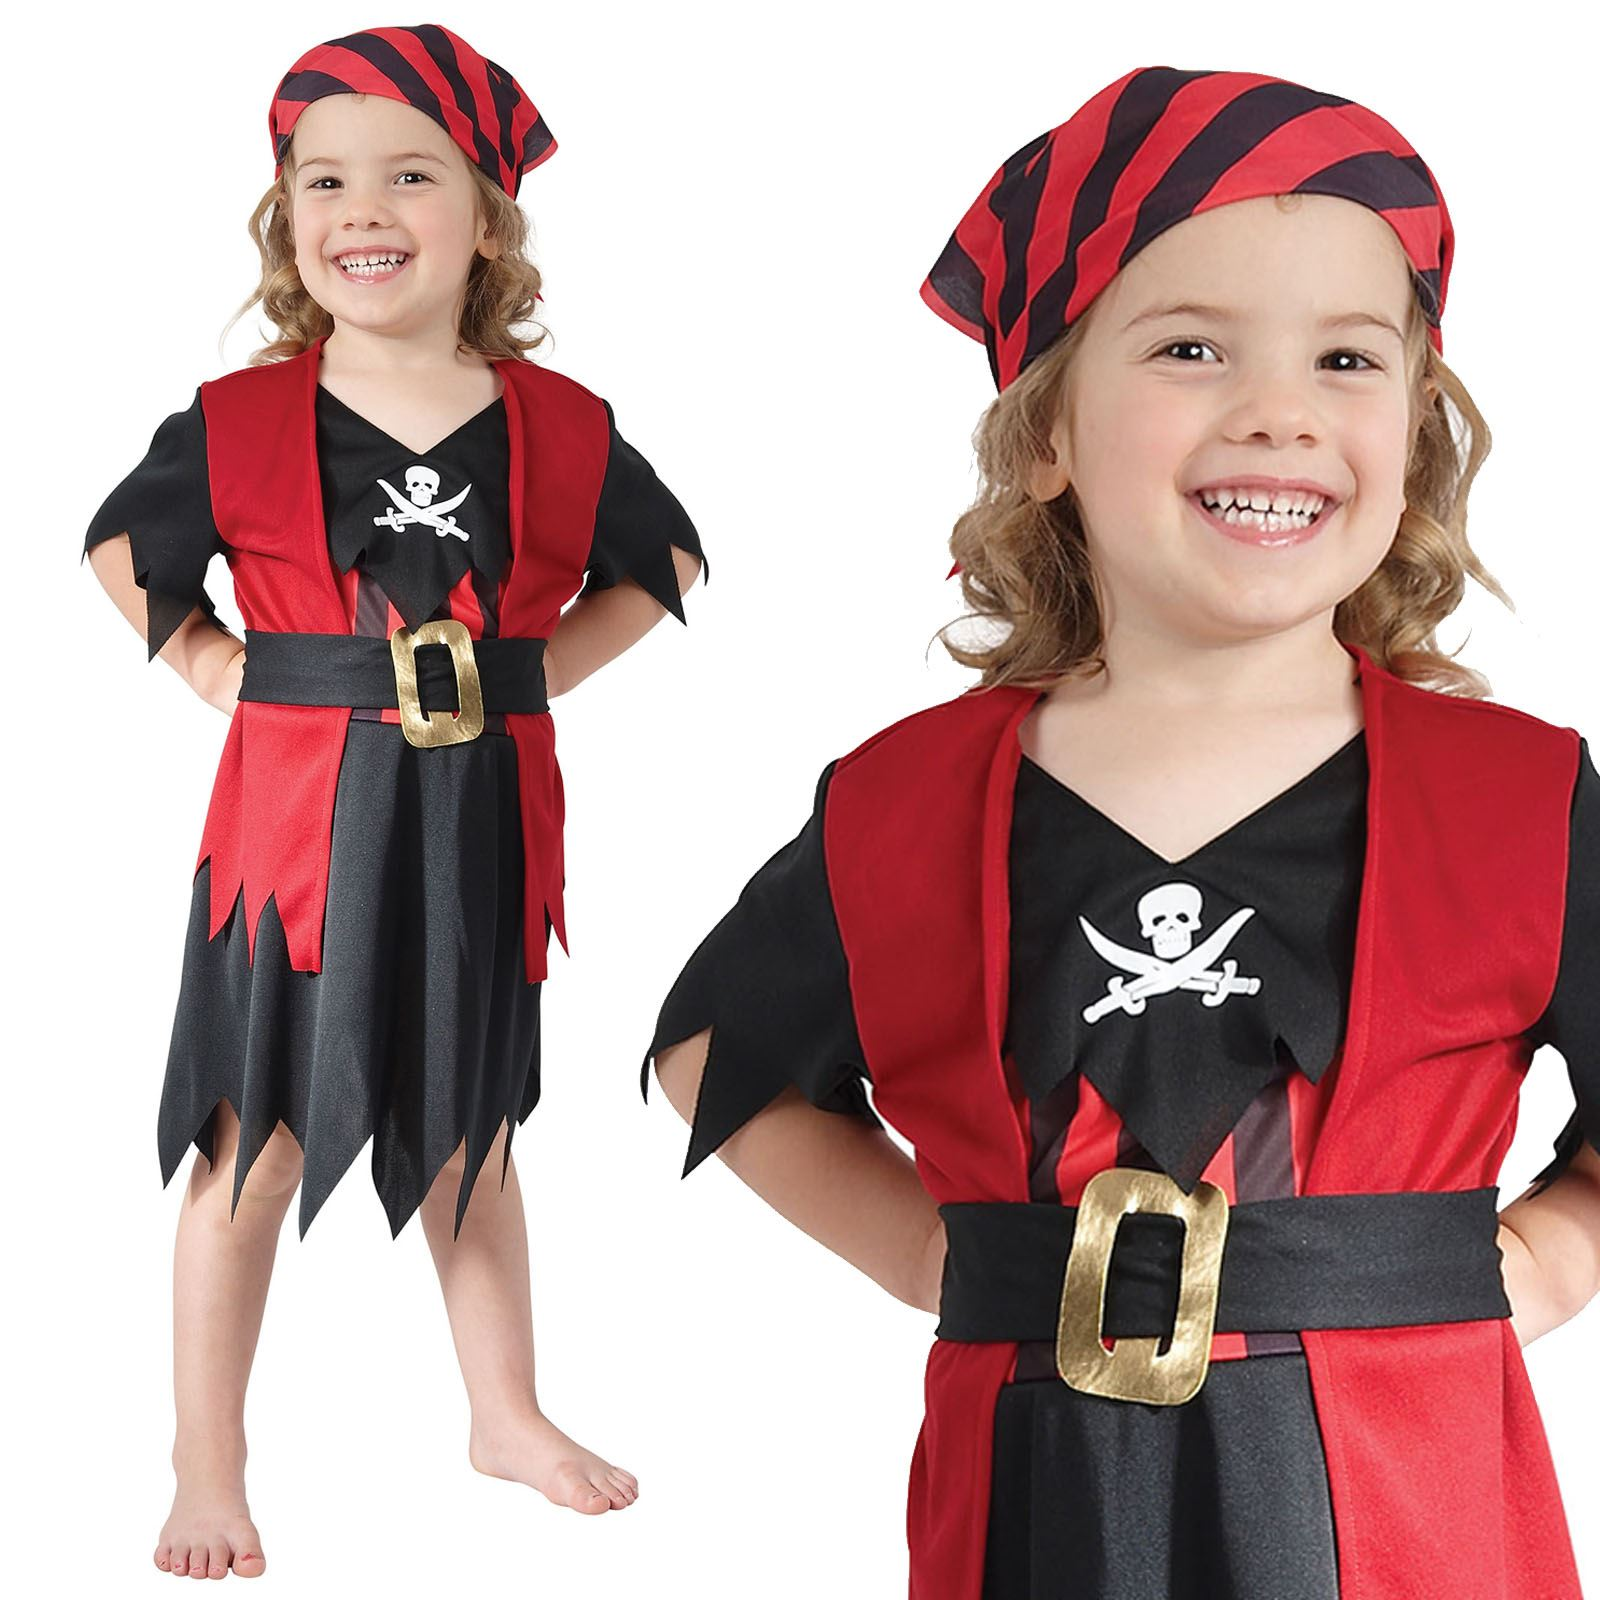 Boy's Toddler Pirate Boy Fancy Dress Costume Book Week Outfi